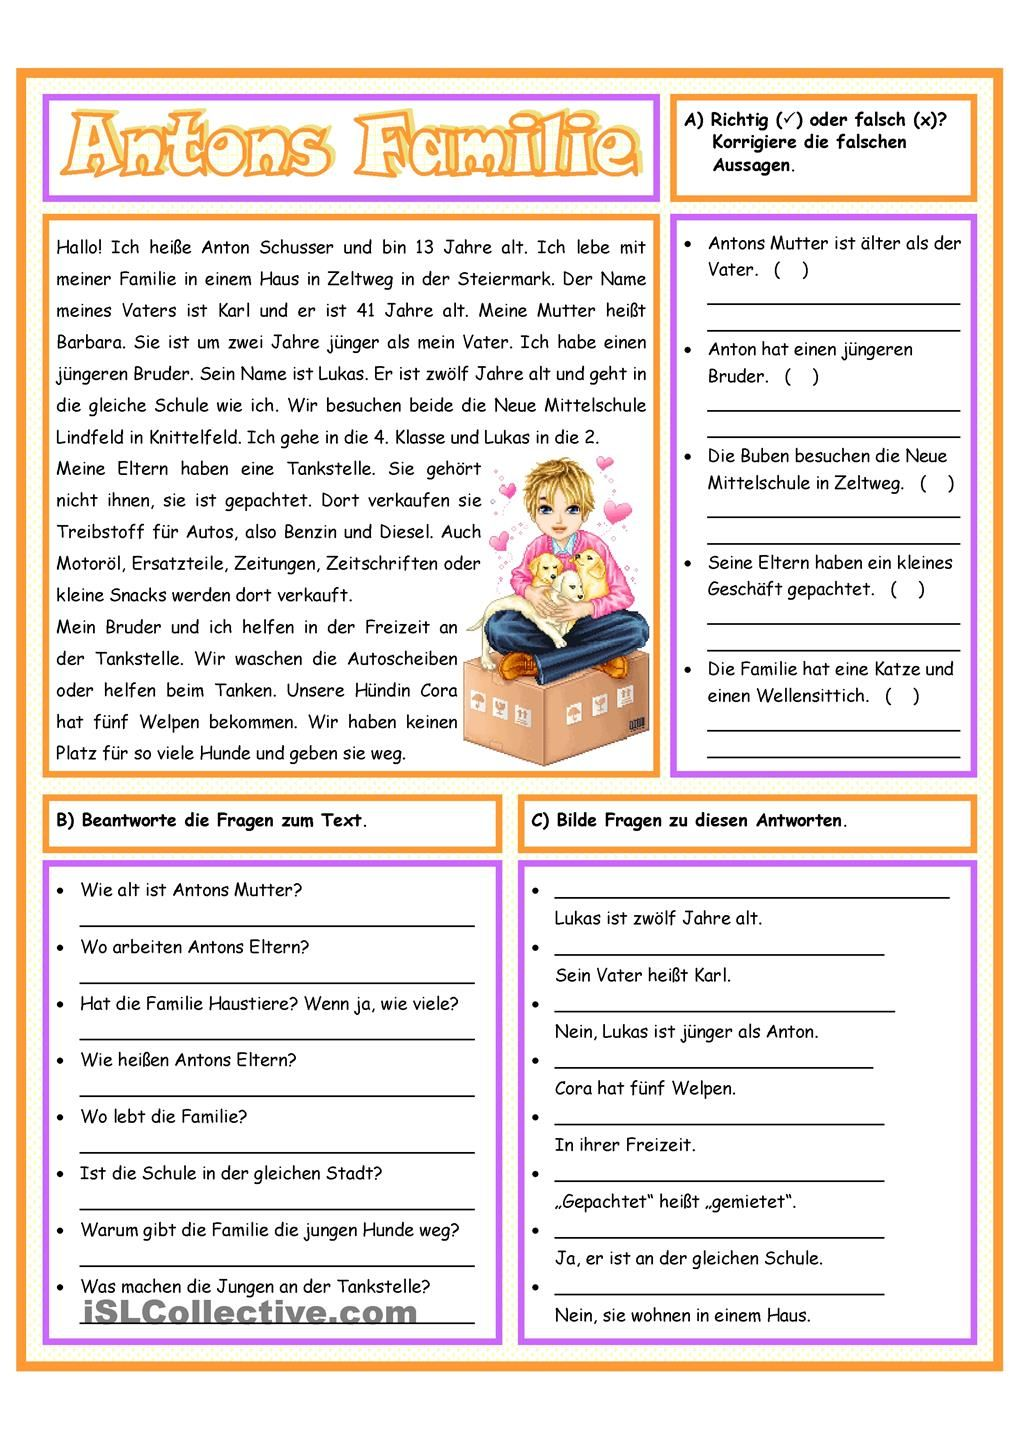 Antons Familie | Anton and Worksheets